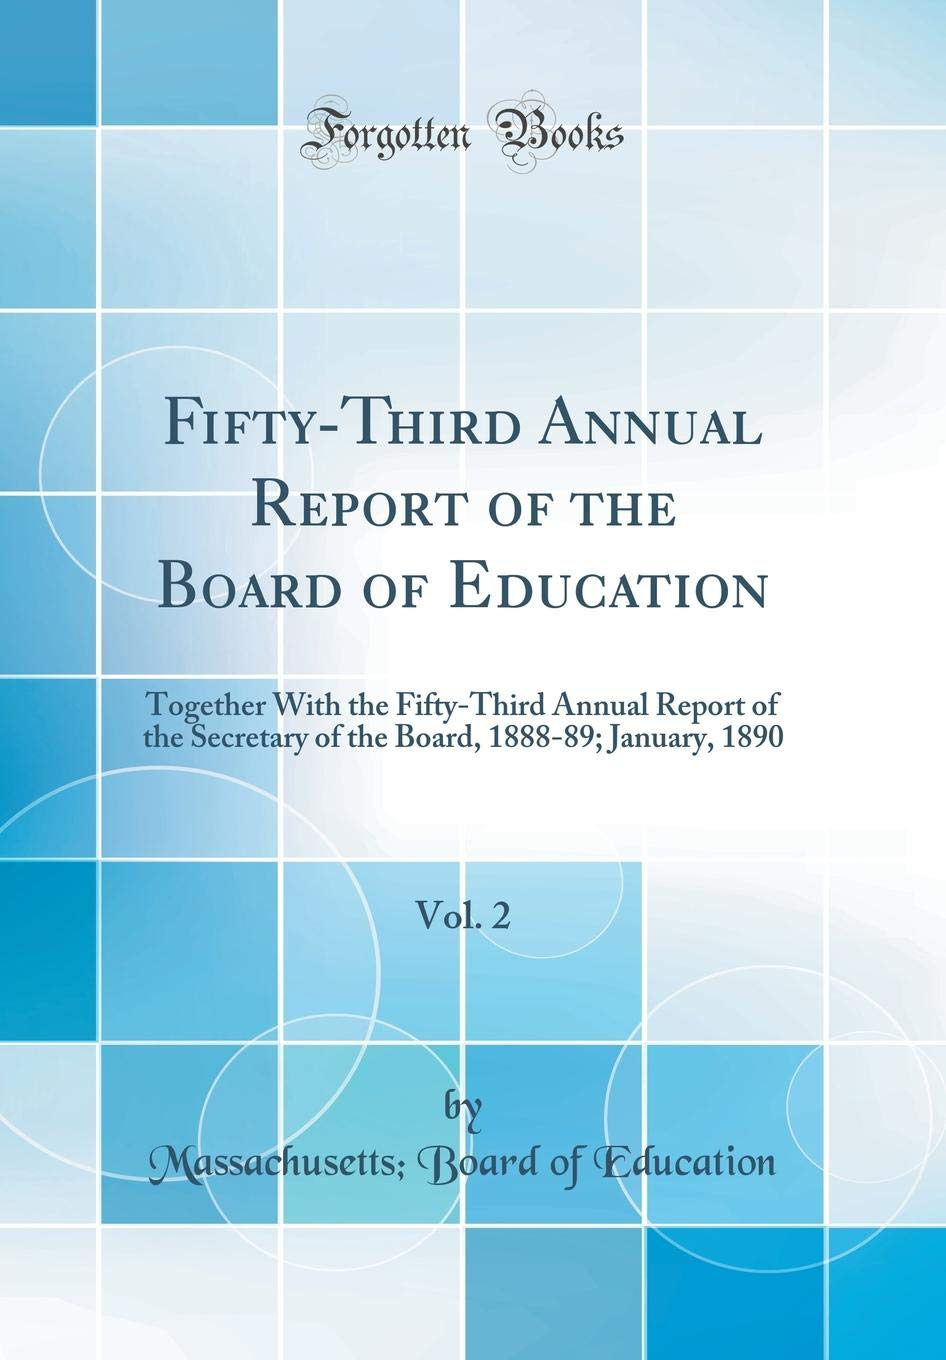 Fifty-Third Annual Report of the Board of Education, Vol. 2: Together With the Fifty-Third Annual Report of the Secretary of the Board, 1888-89; January, 1890 (Classic Reprint) PDF